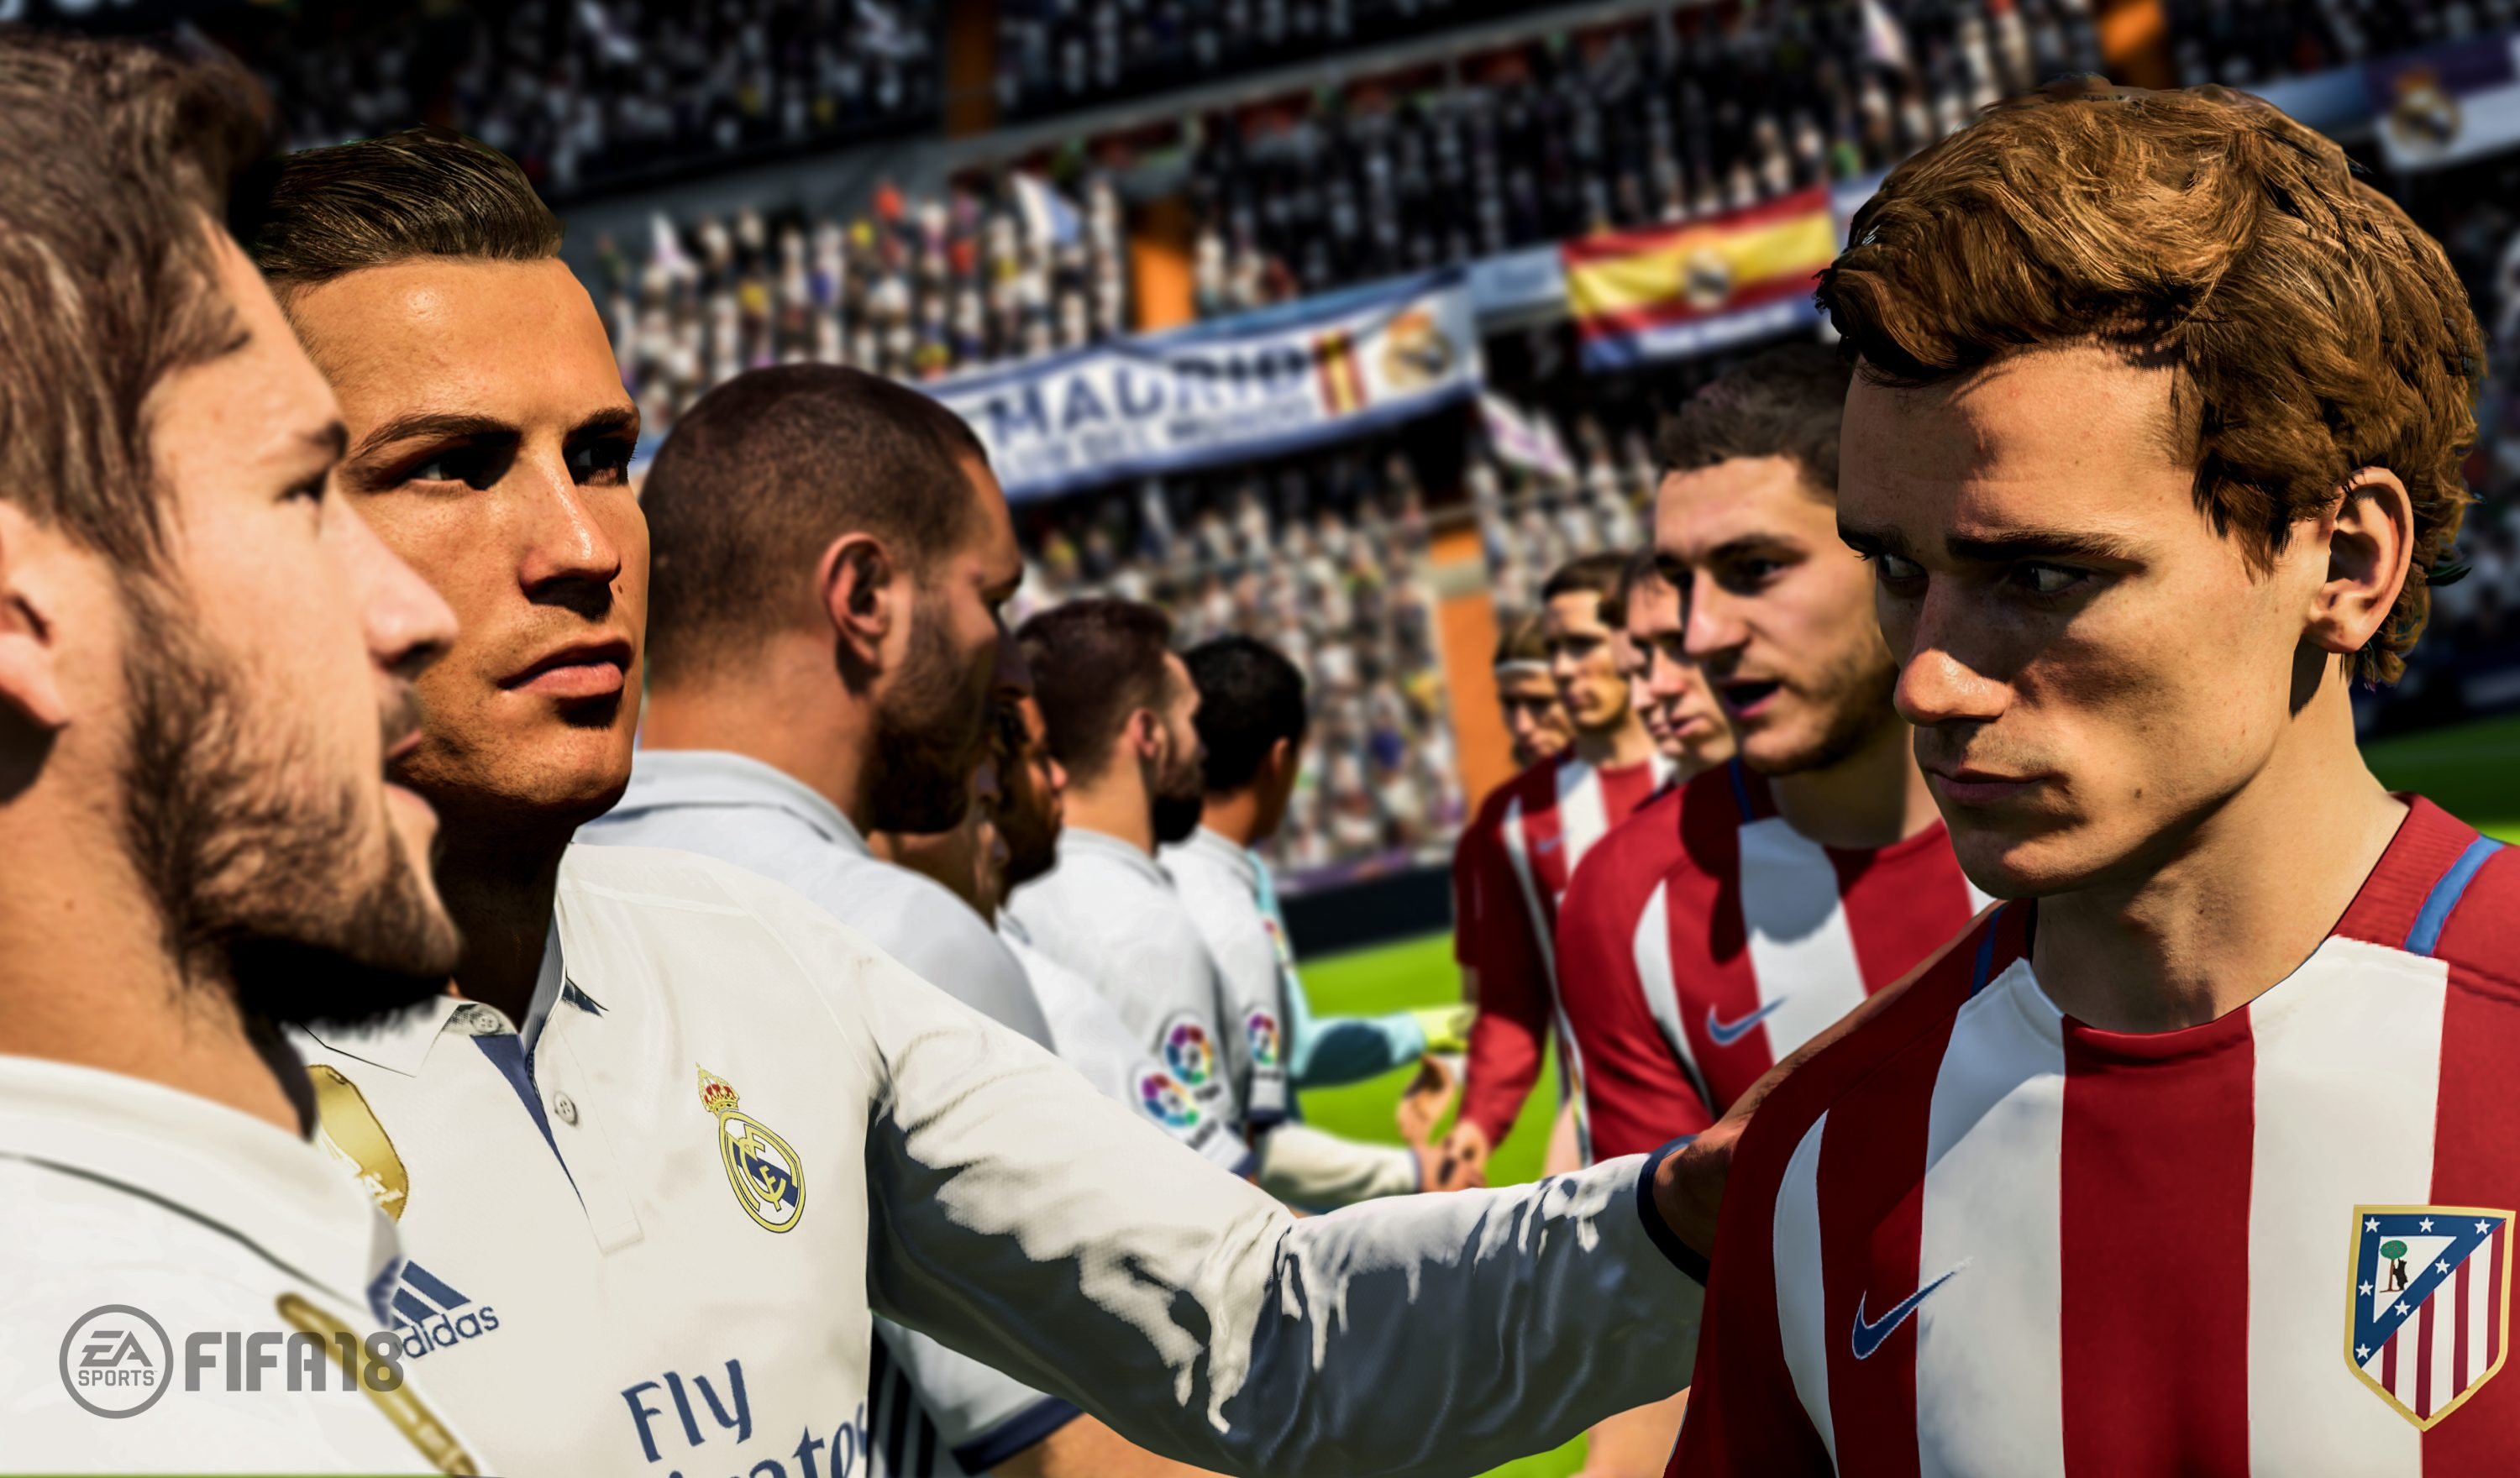 An Inside Look at FIFA 18